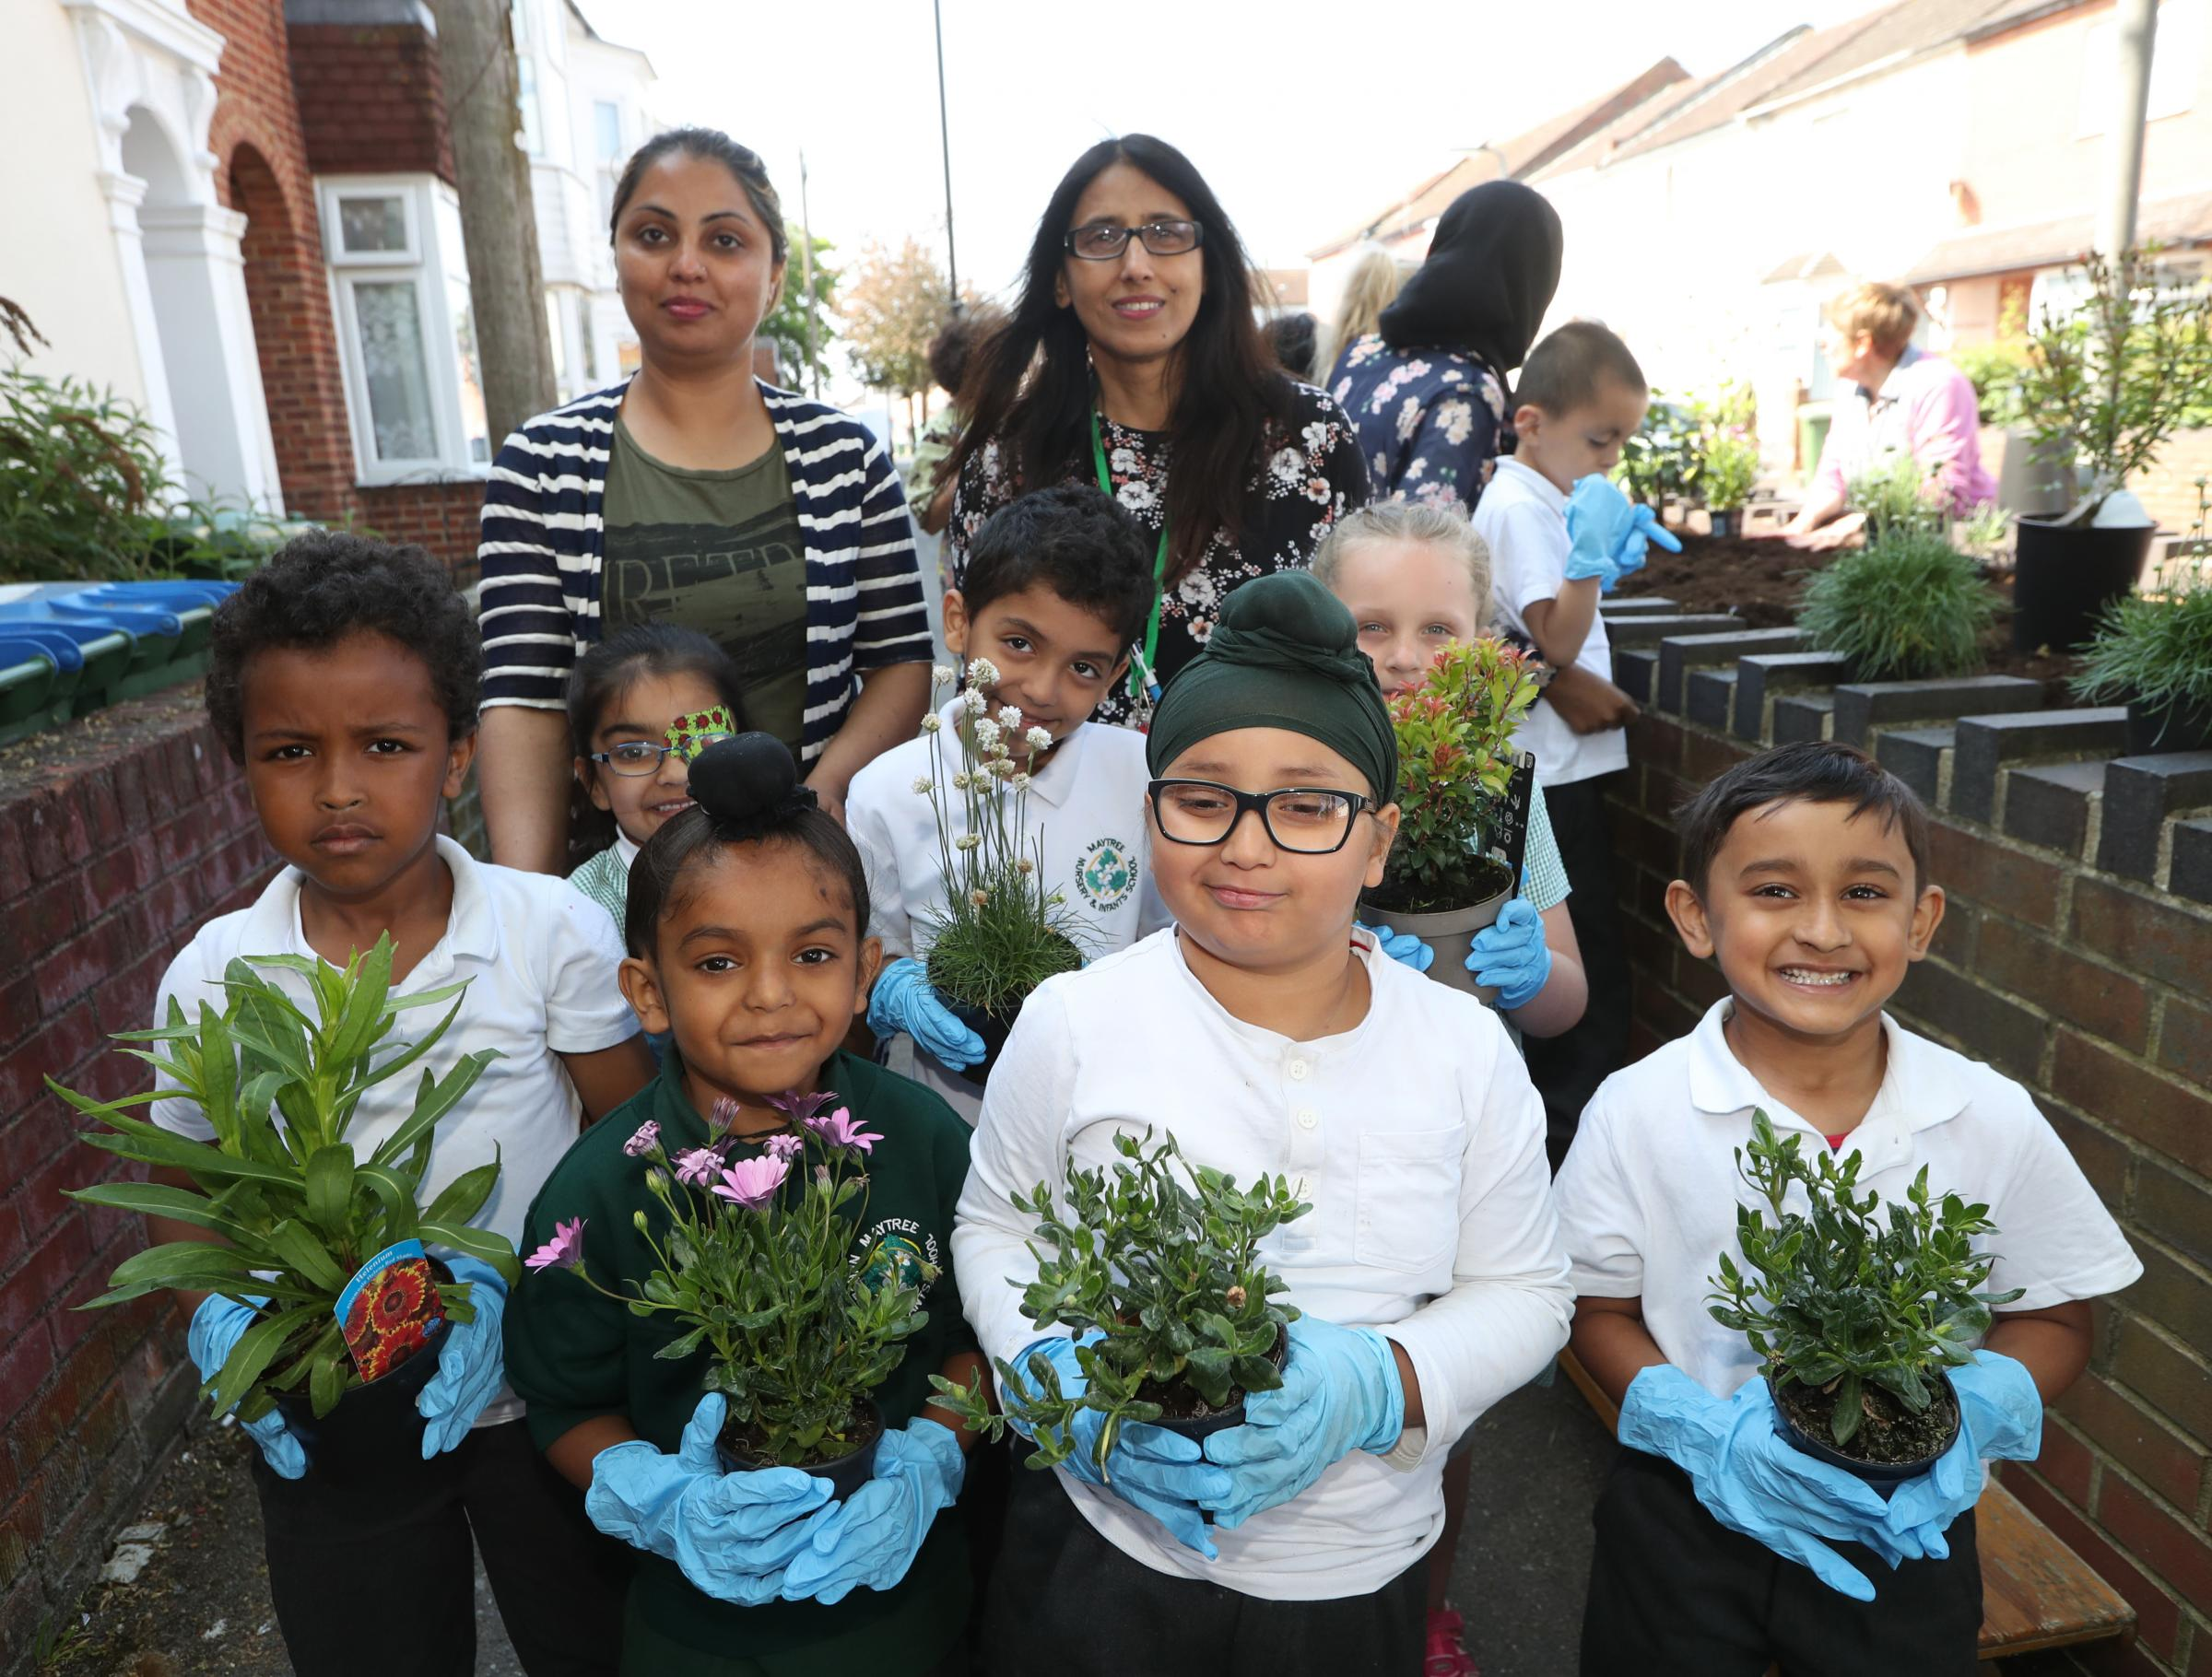 Pupils from Maytree Infant and Nursery School planting flowers in Derby Road with the help of teachers, parents and Councillor Satvir Kaur.